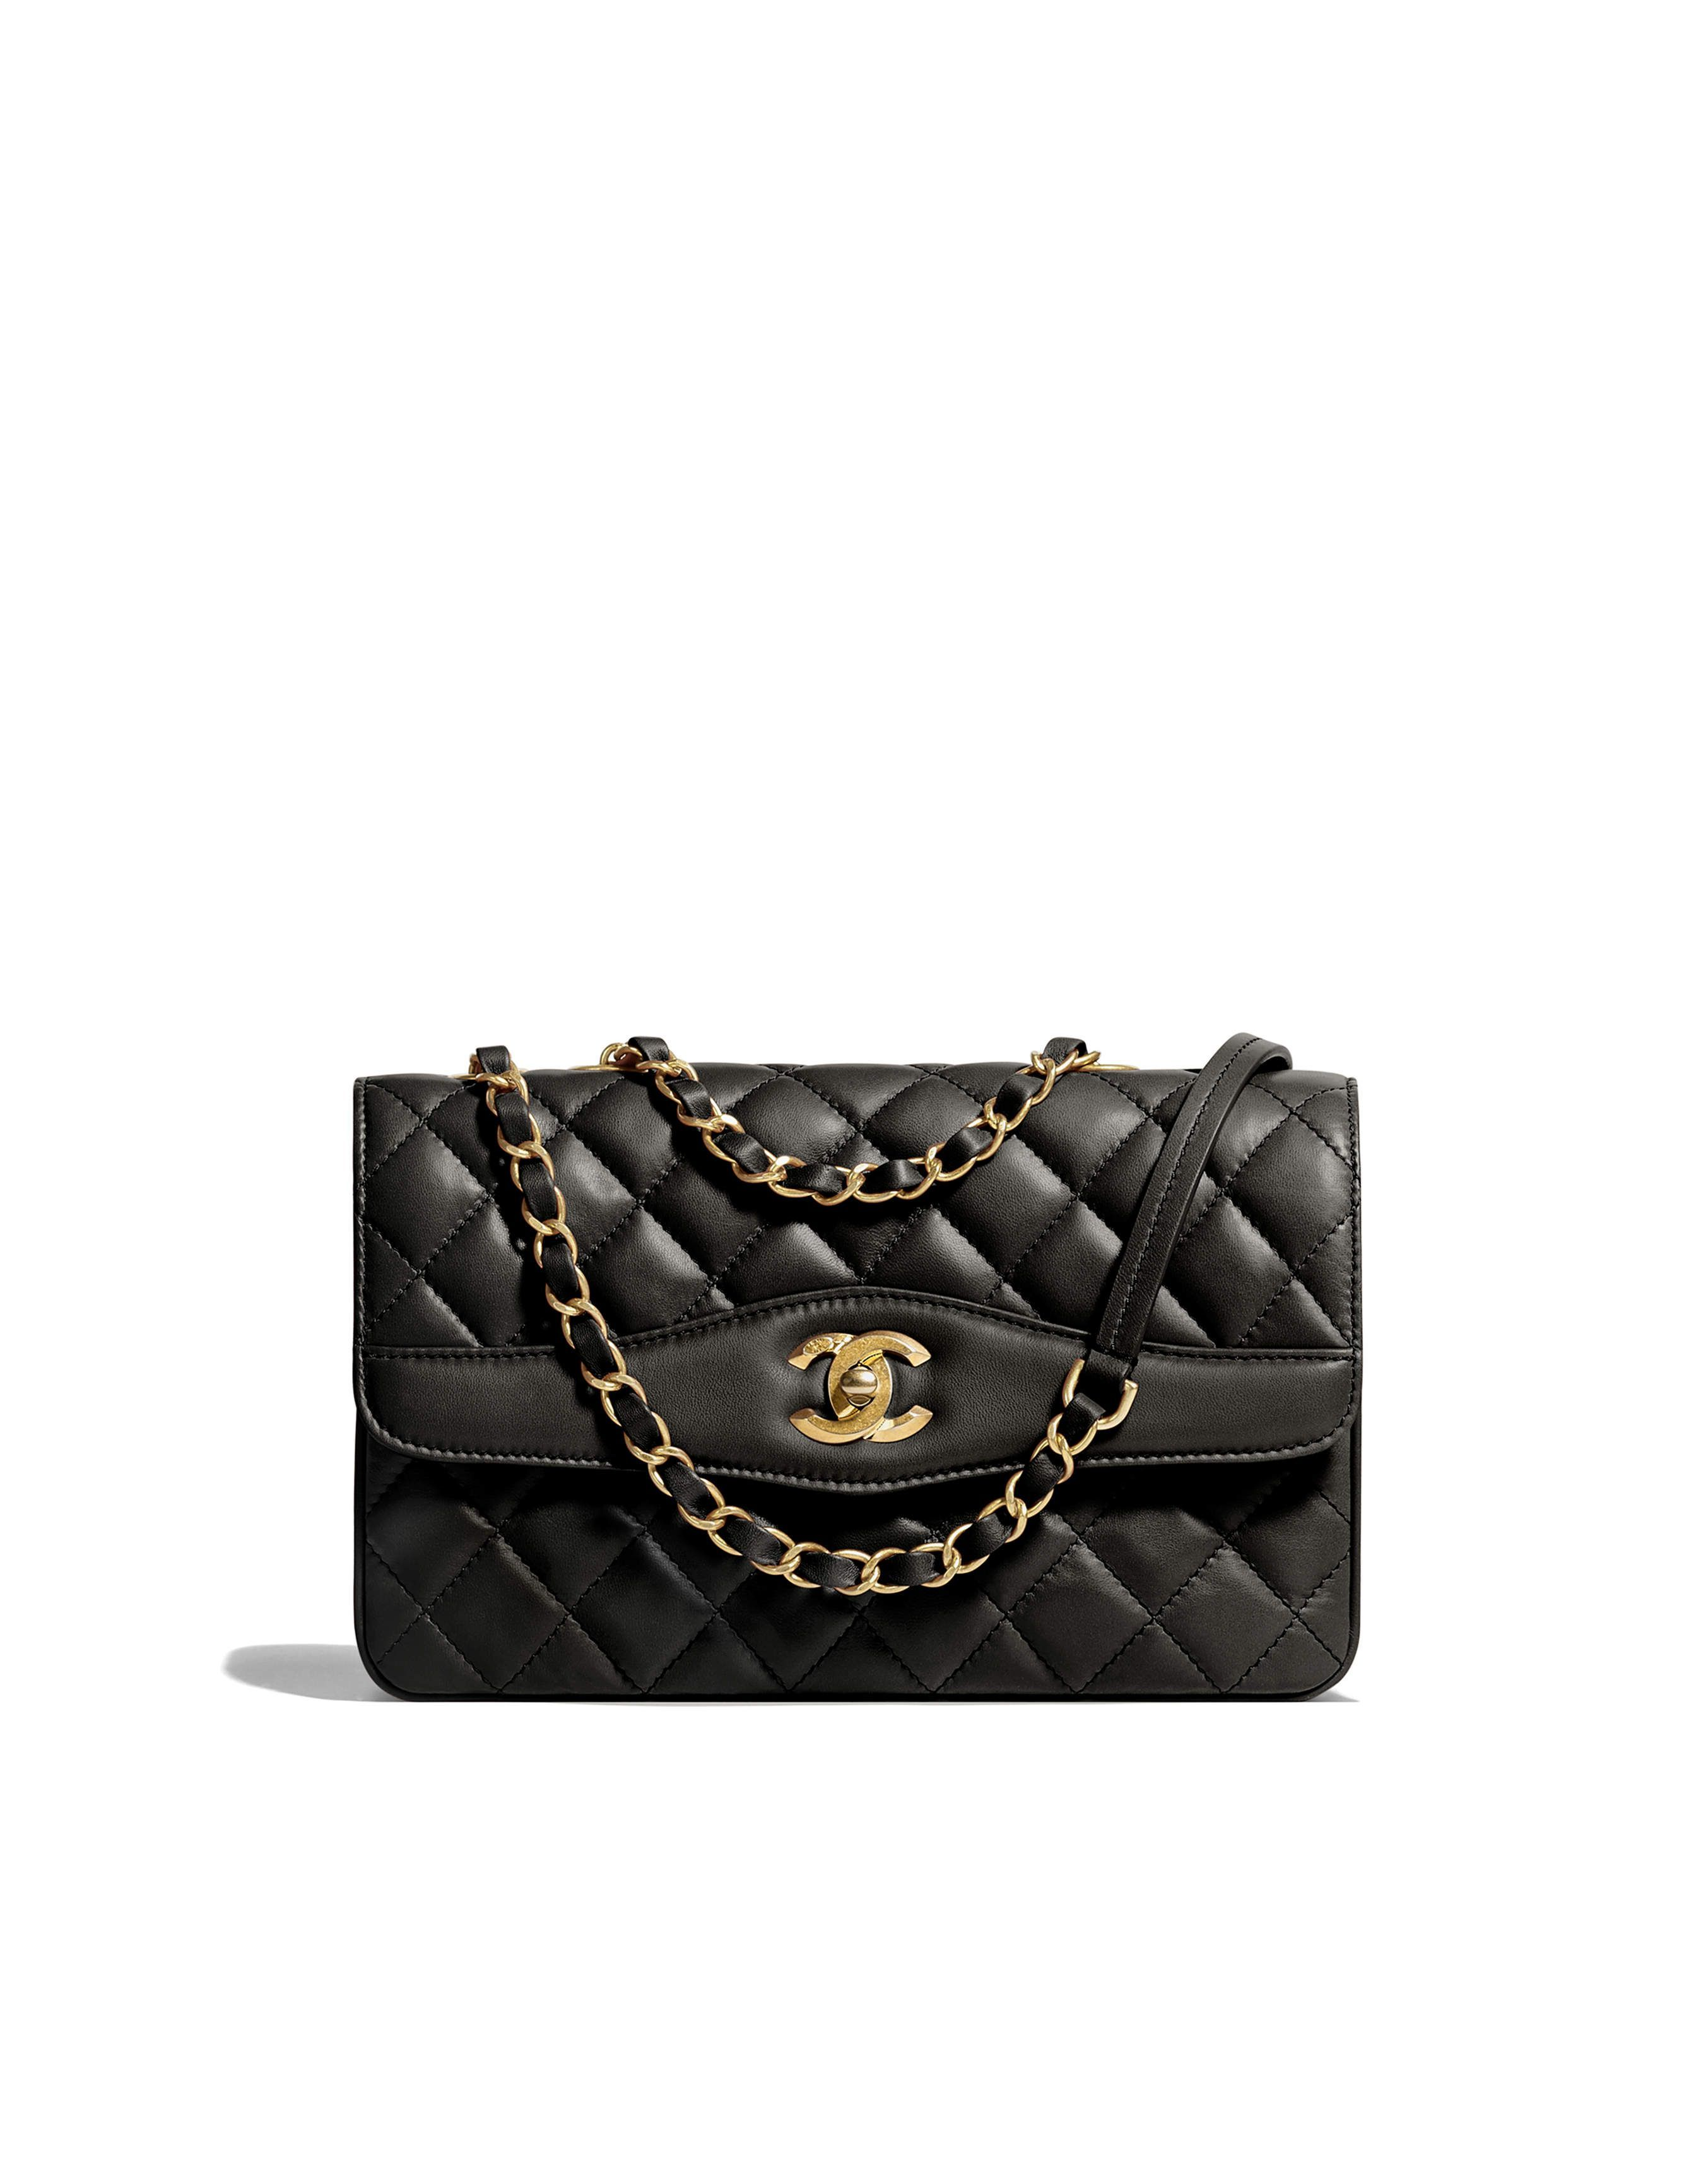 a6e08593d8c835 Spring-Summer 2018 Pre-Collection - lambskin, studs, gold-tone & silver-tone  metal-black